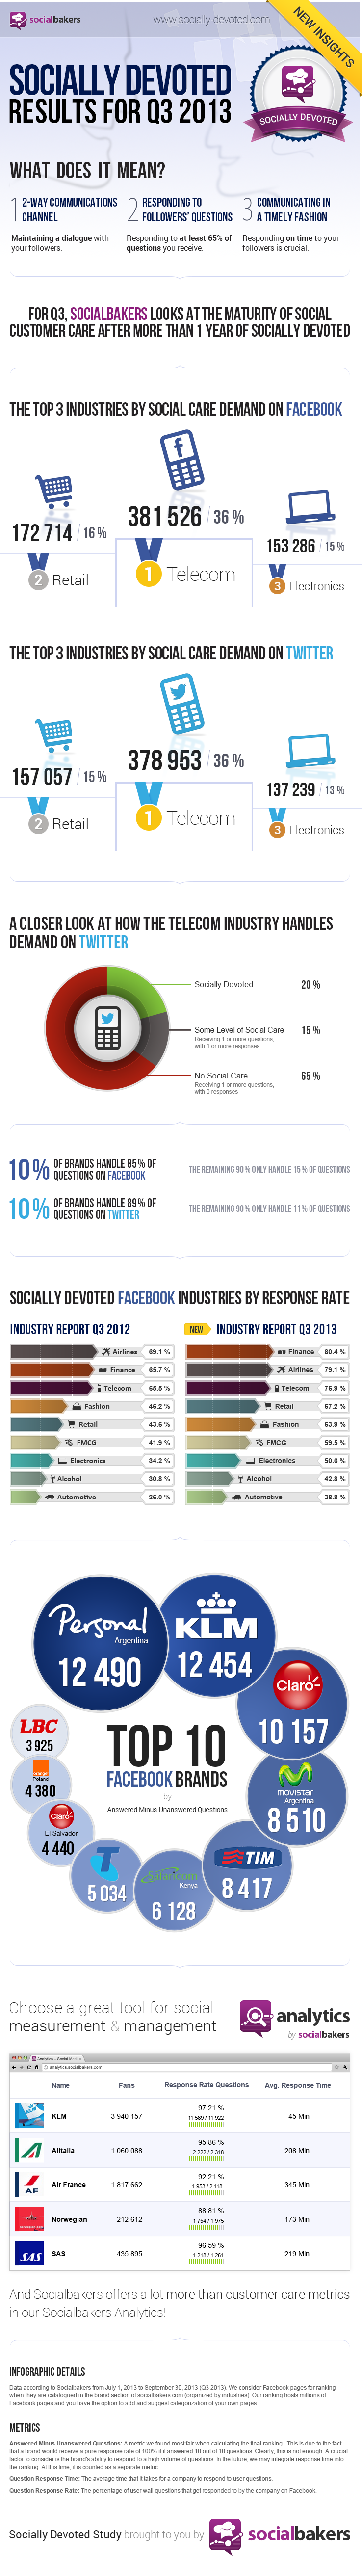 Socially Devoted 2013 Q3 results